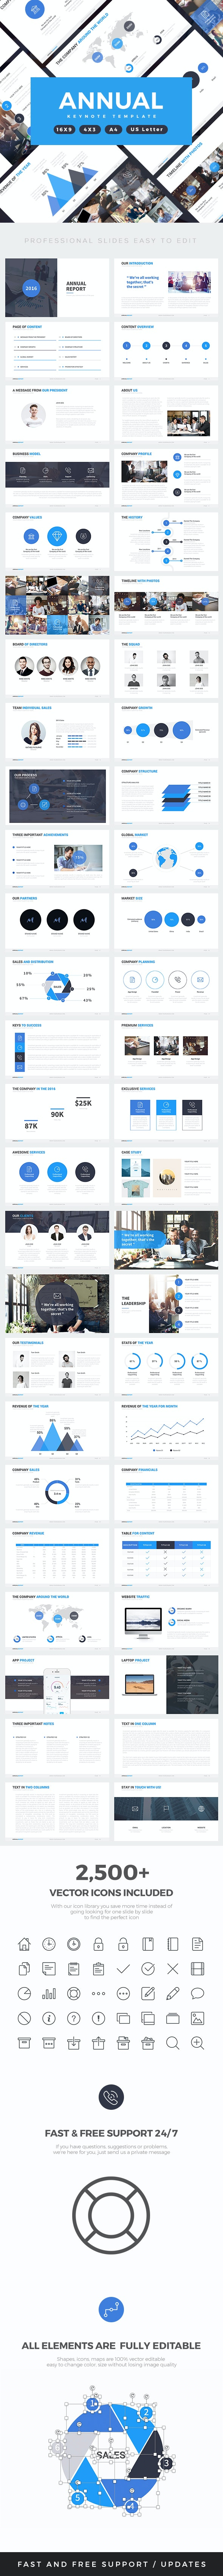 Annual Report Keynote Template - Business Keynote Templates